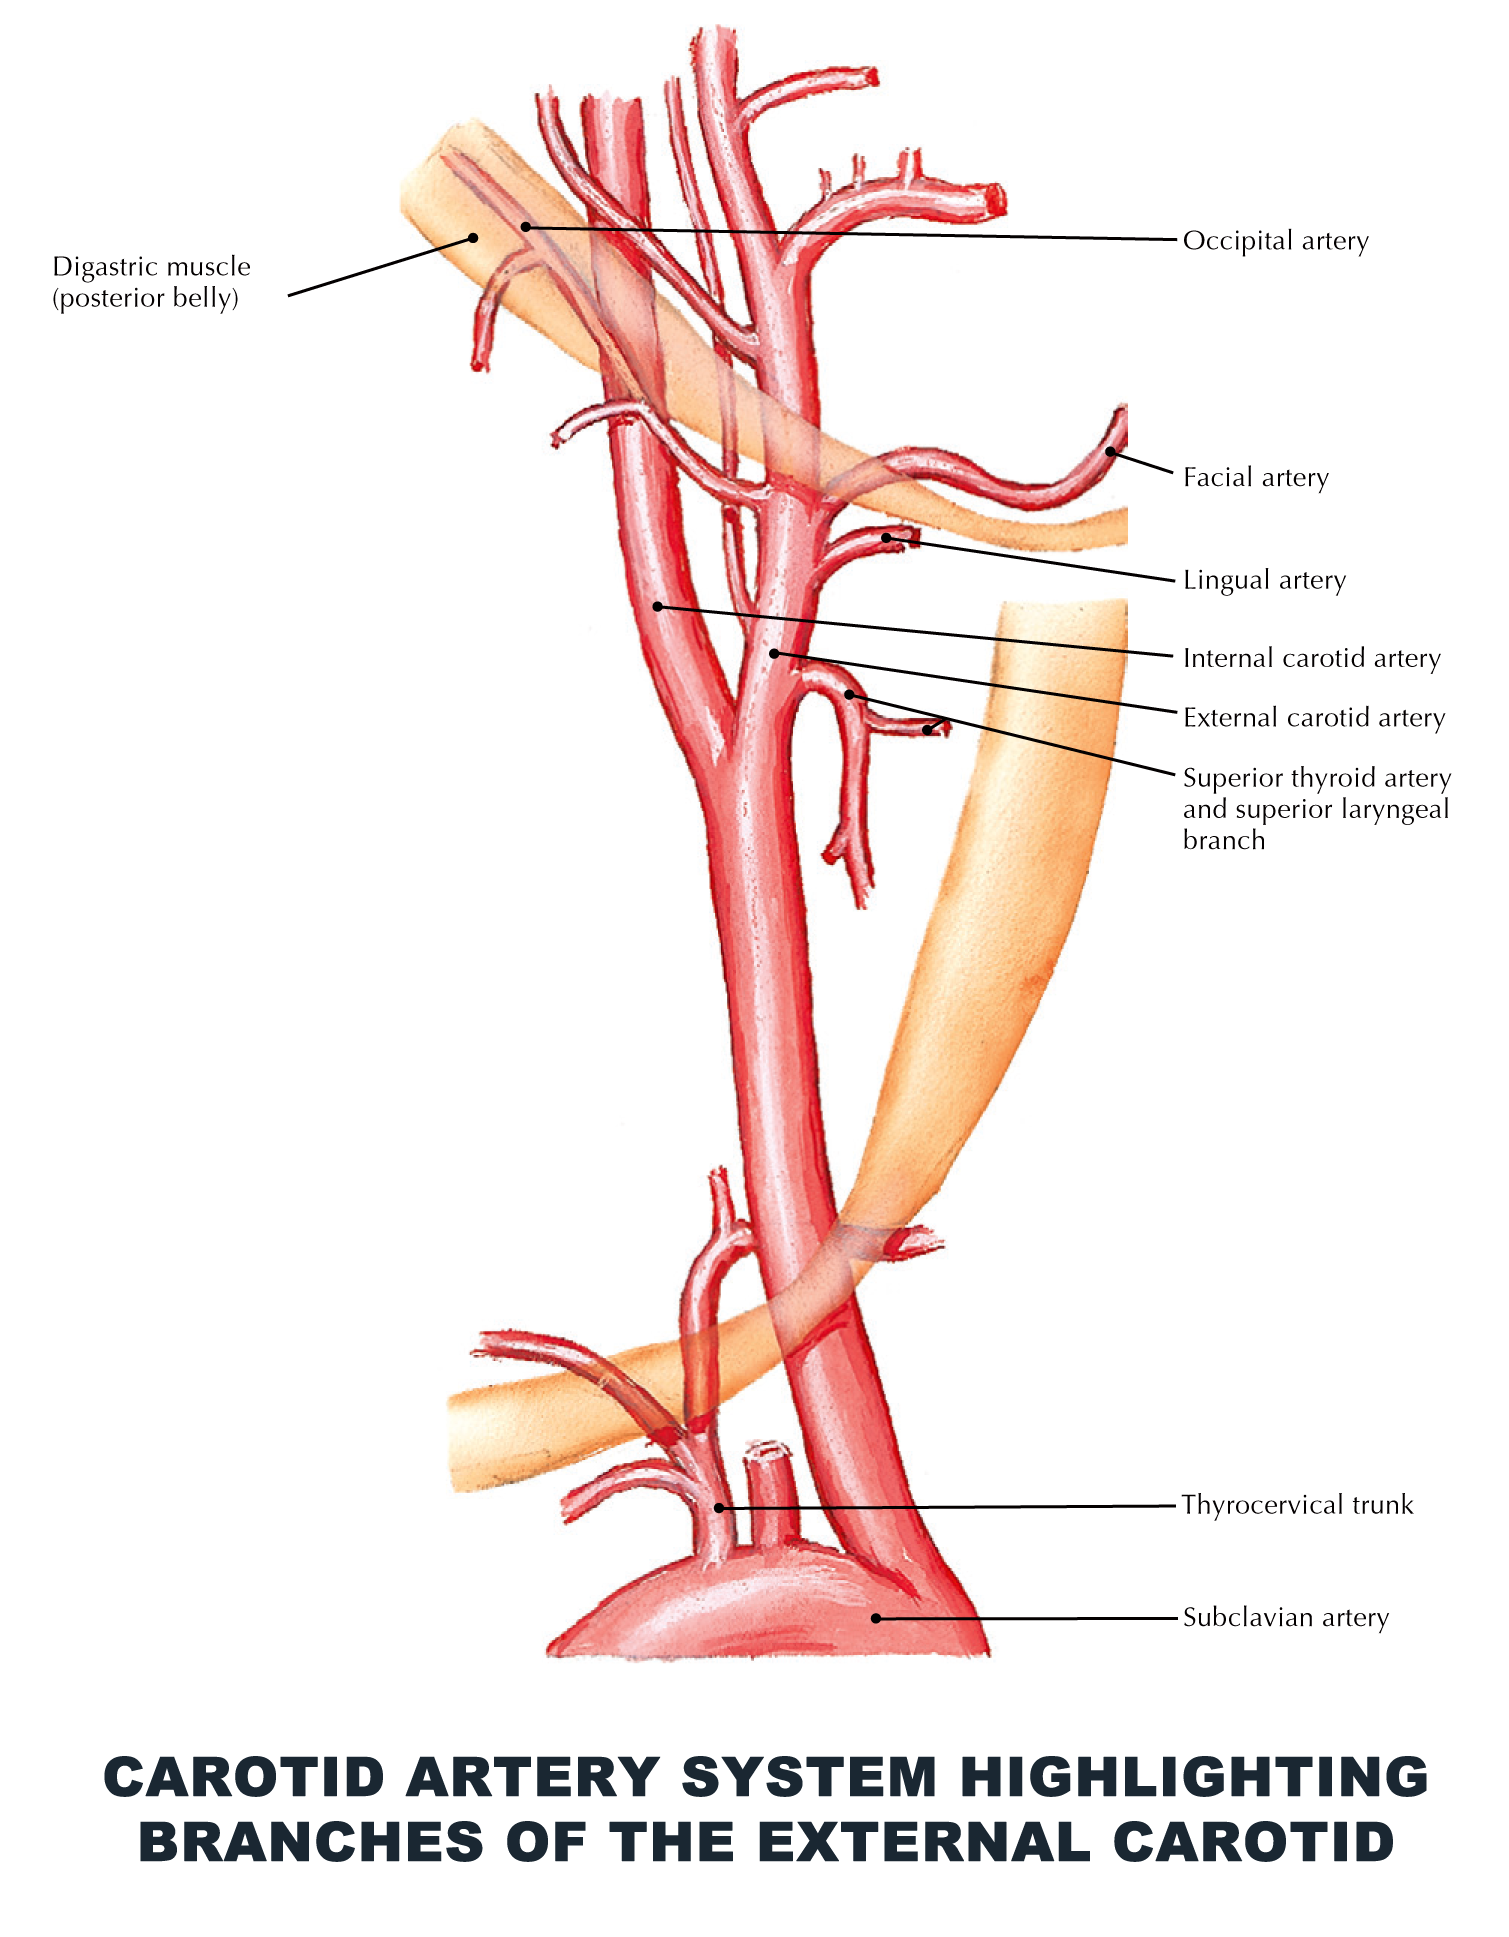 Carotid Artery System Highlighting Branches Of The External Carotid